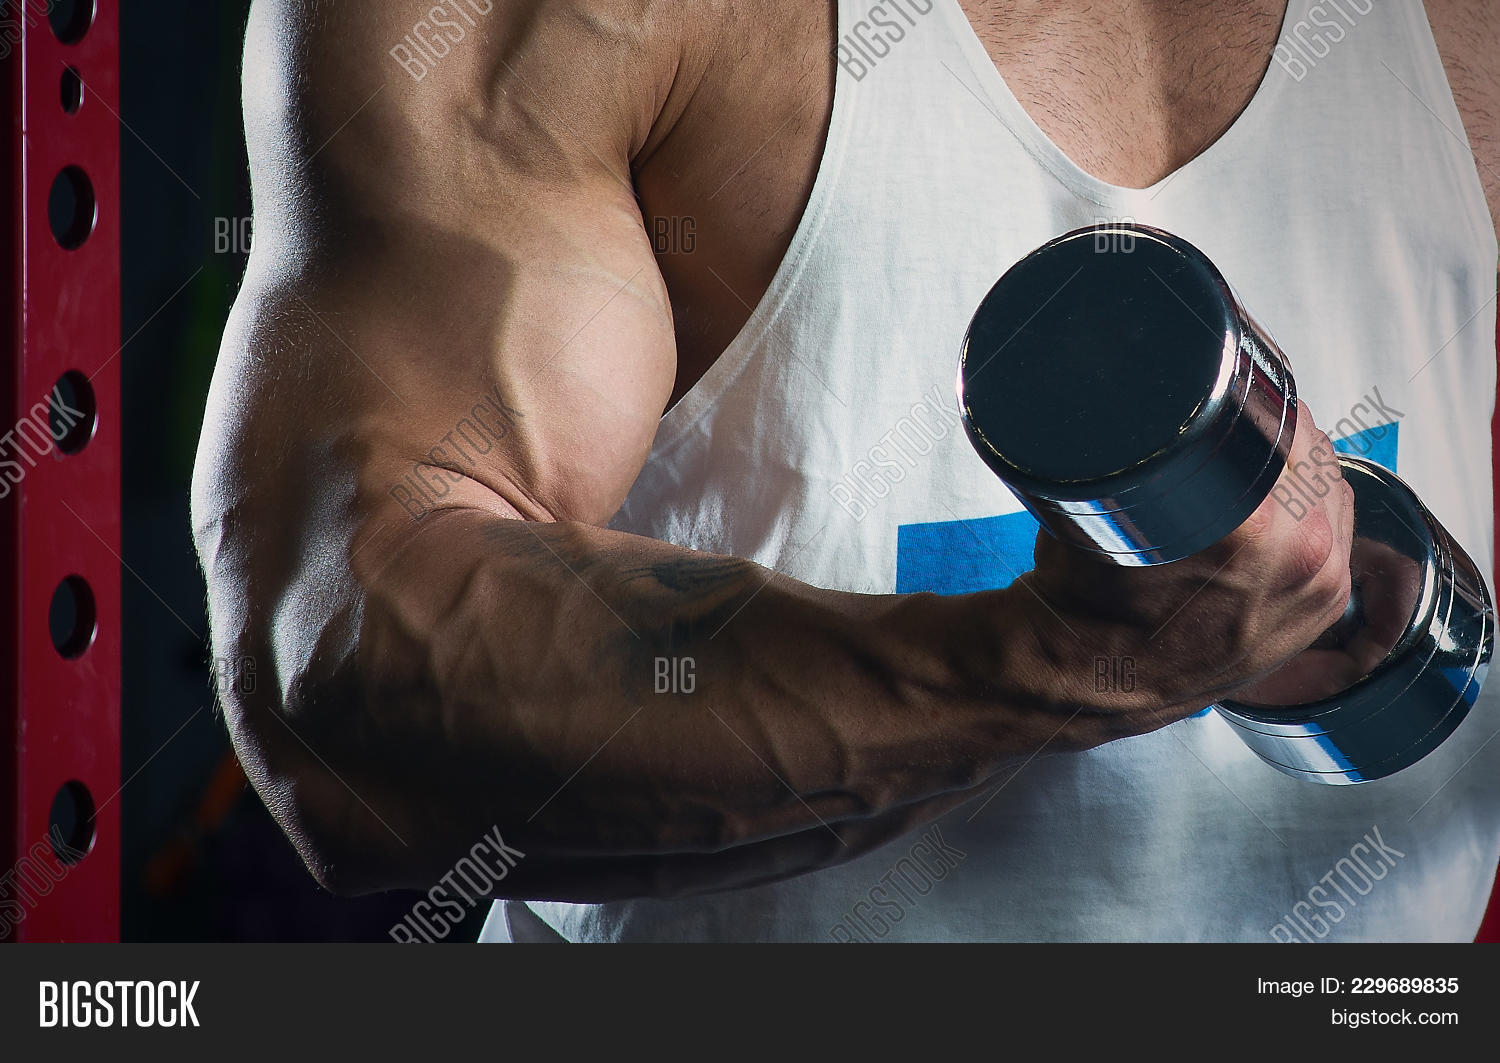 Muscular Arms Doing Image Photo Free Trial Bigstock